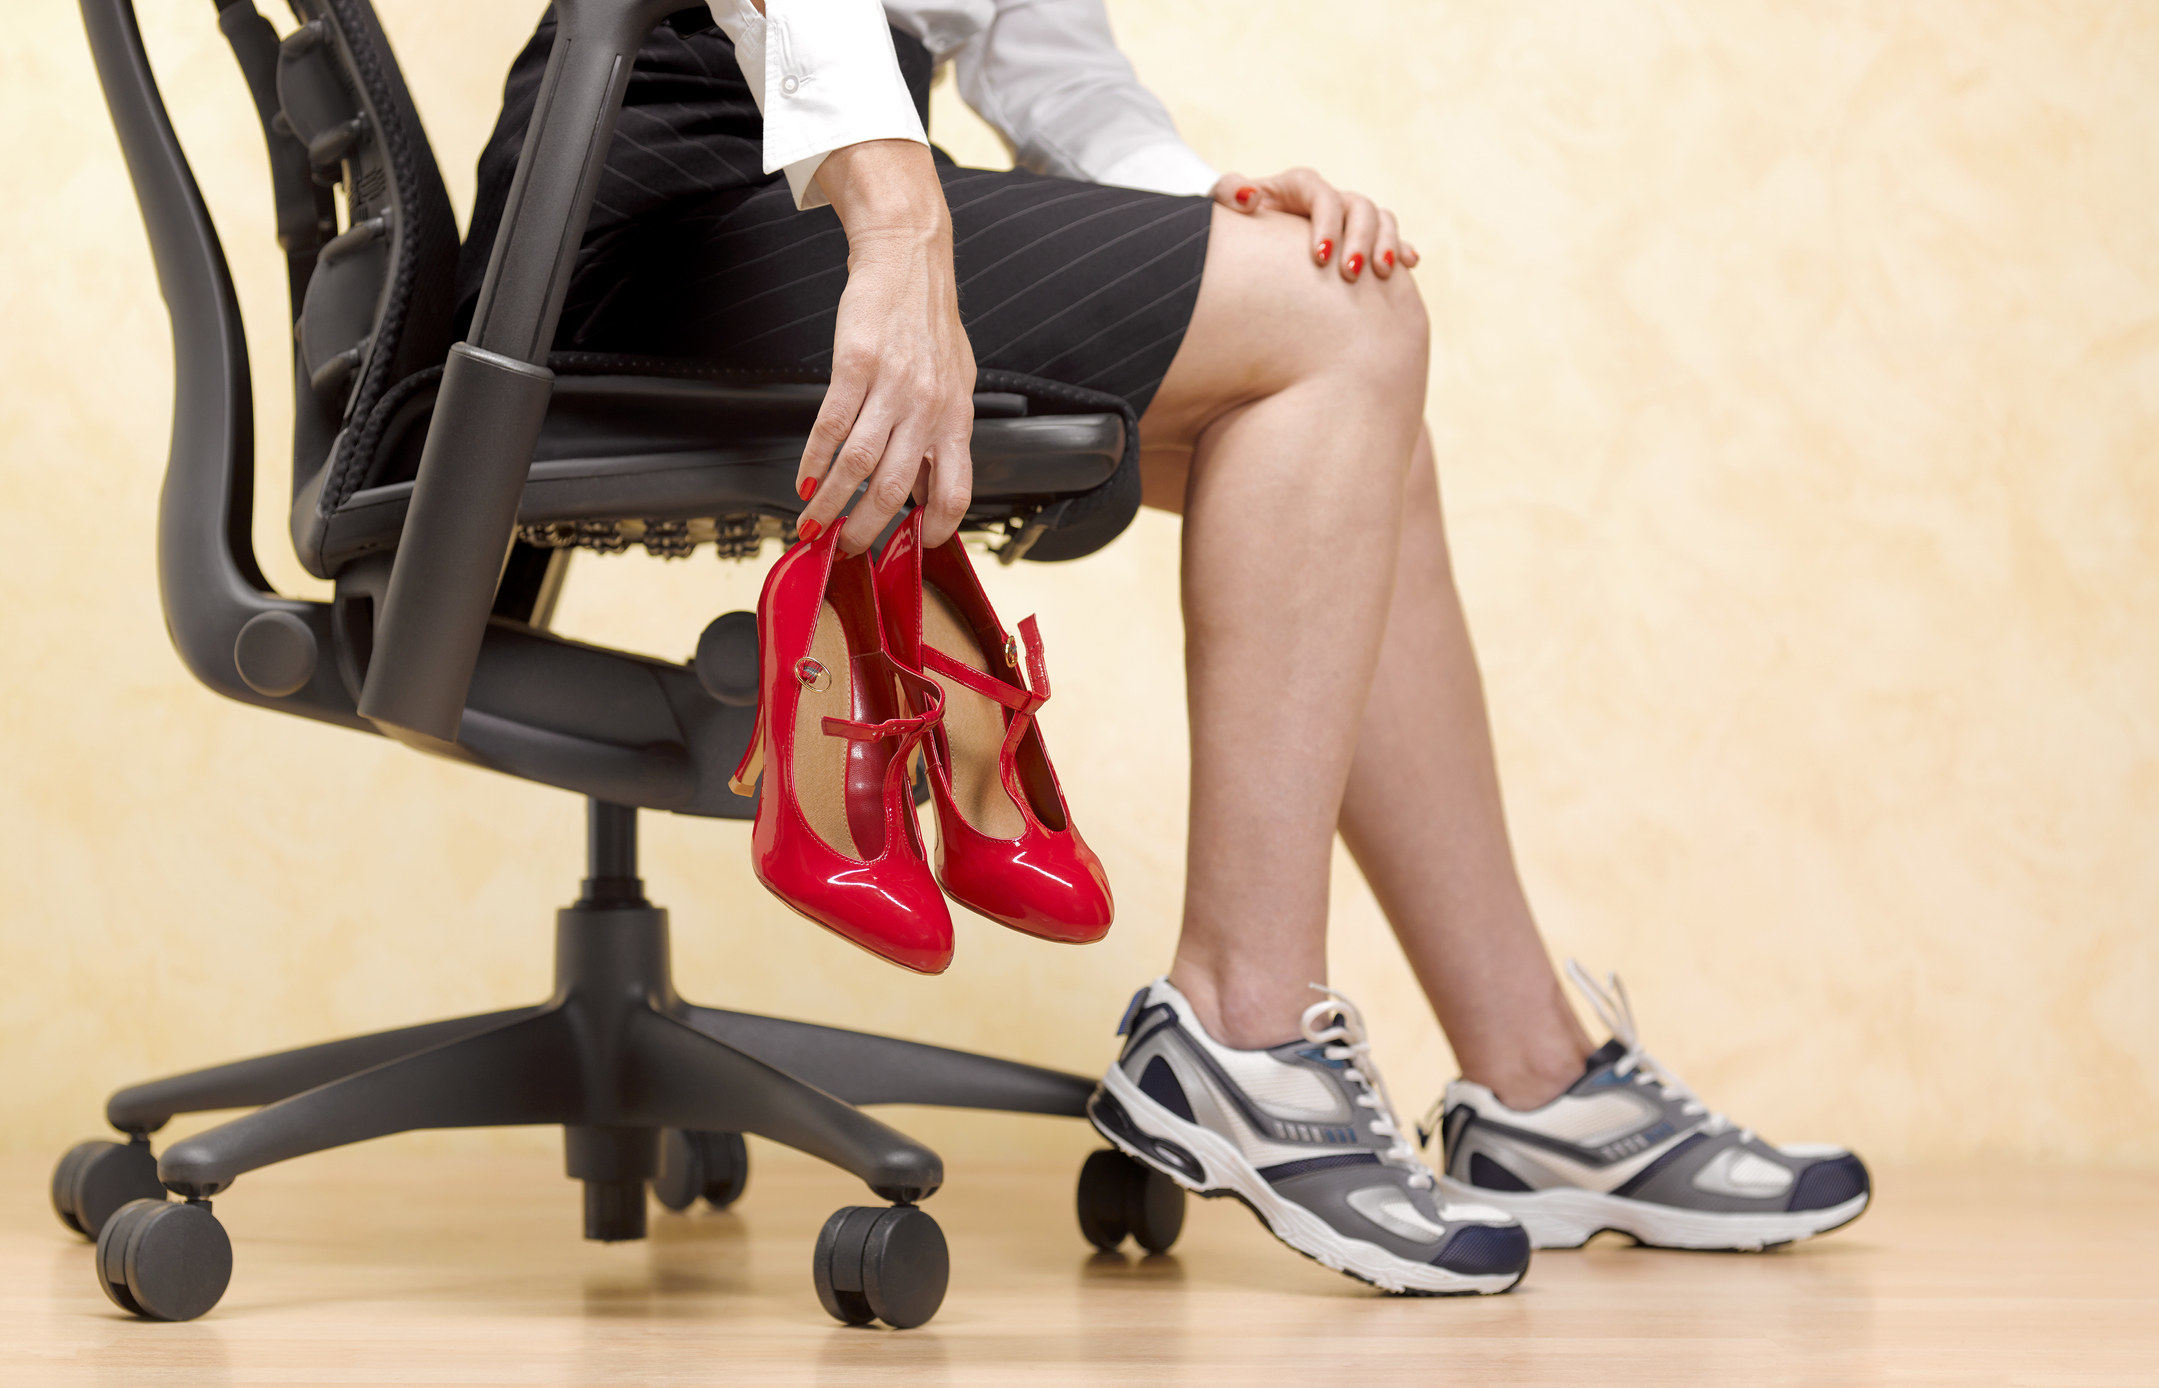 A woman in an office chair wearing tennis shoes and holding up a pair of high heels